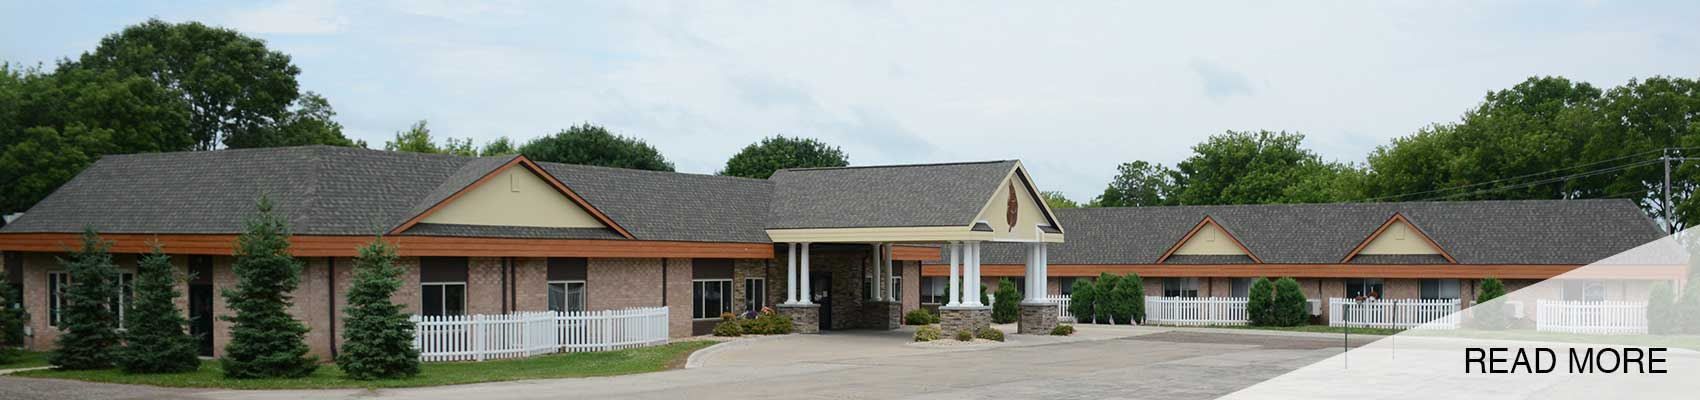 Copperleaf Senior Living   in Marathon City, WI